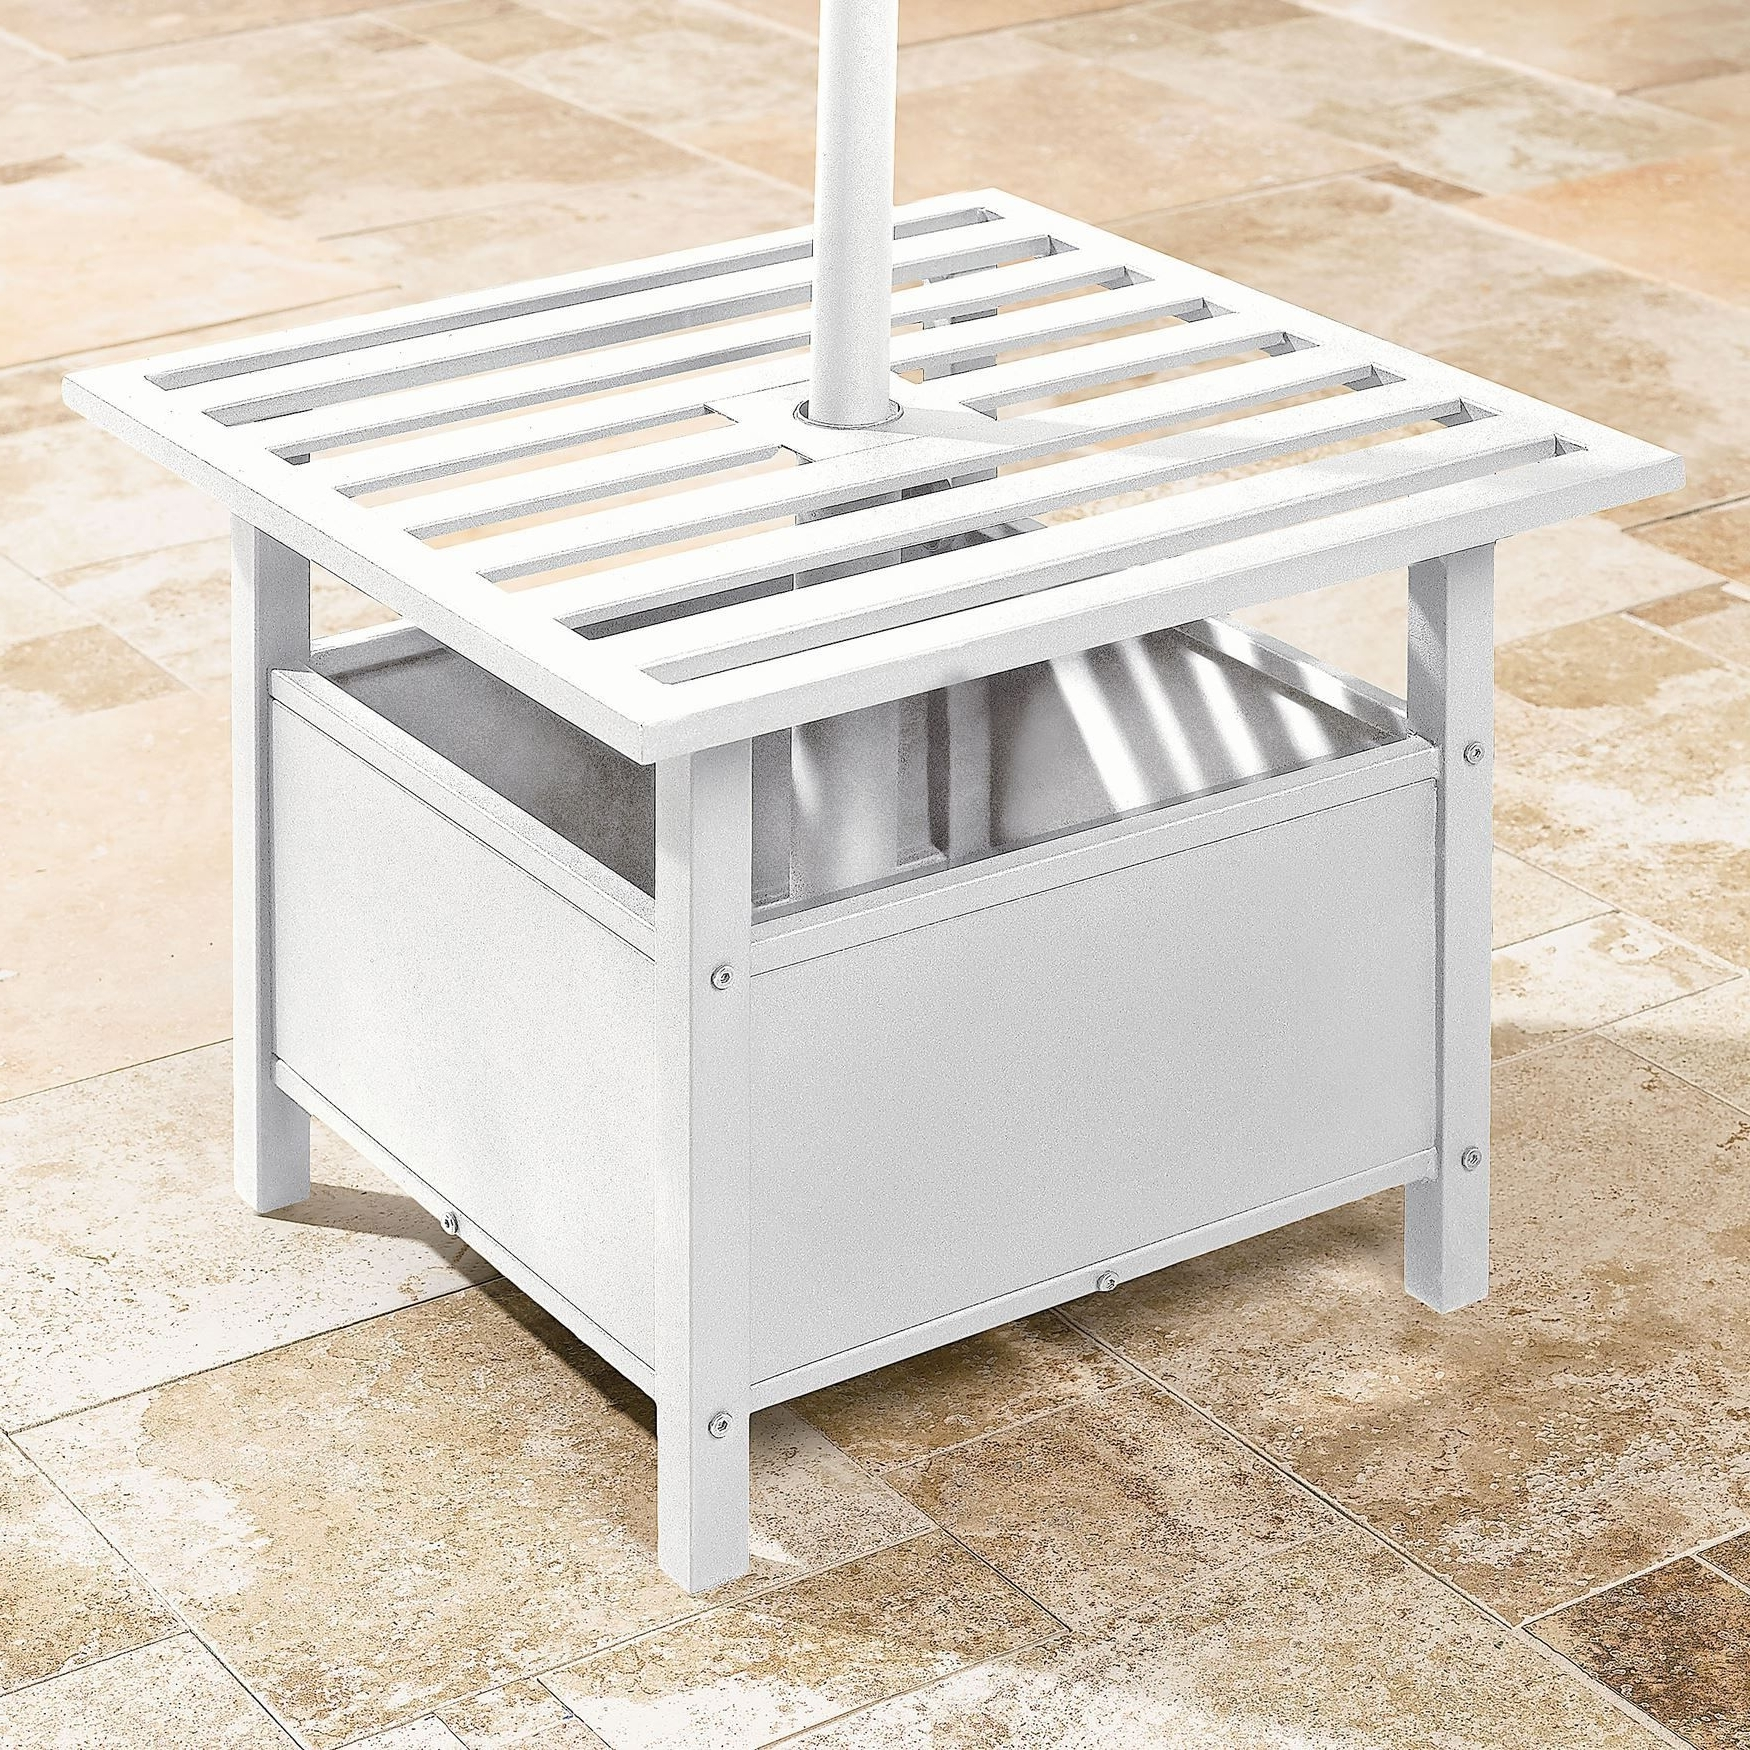 Well Known Patio Umbrella Side Tables Pertaining To 45 Patio Umbrella Stand Side Table, Hampton Umbrella Side Tables (View 19 of 20)